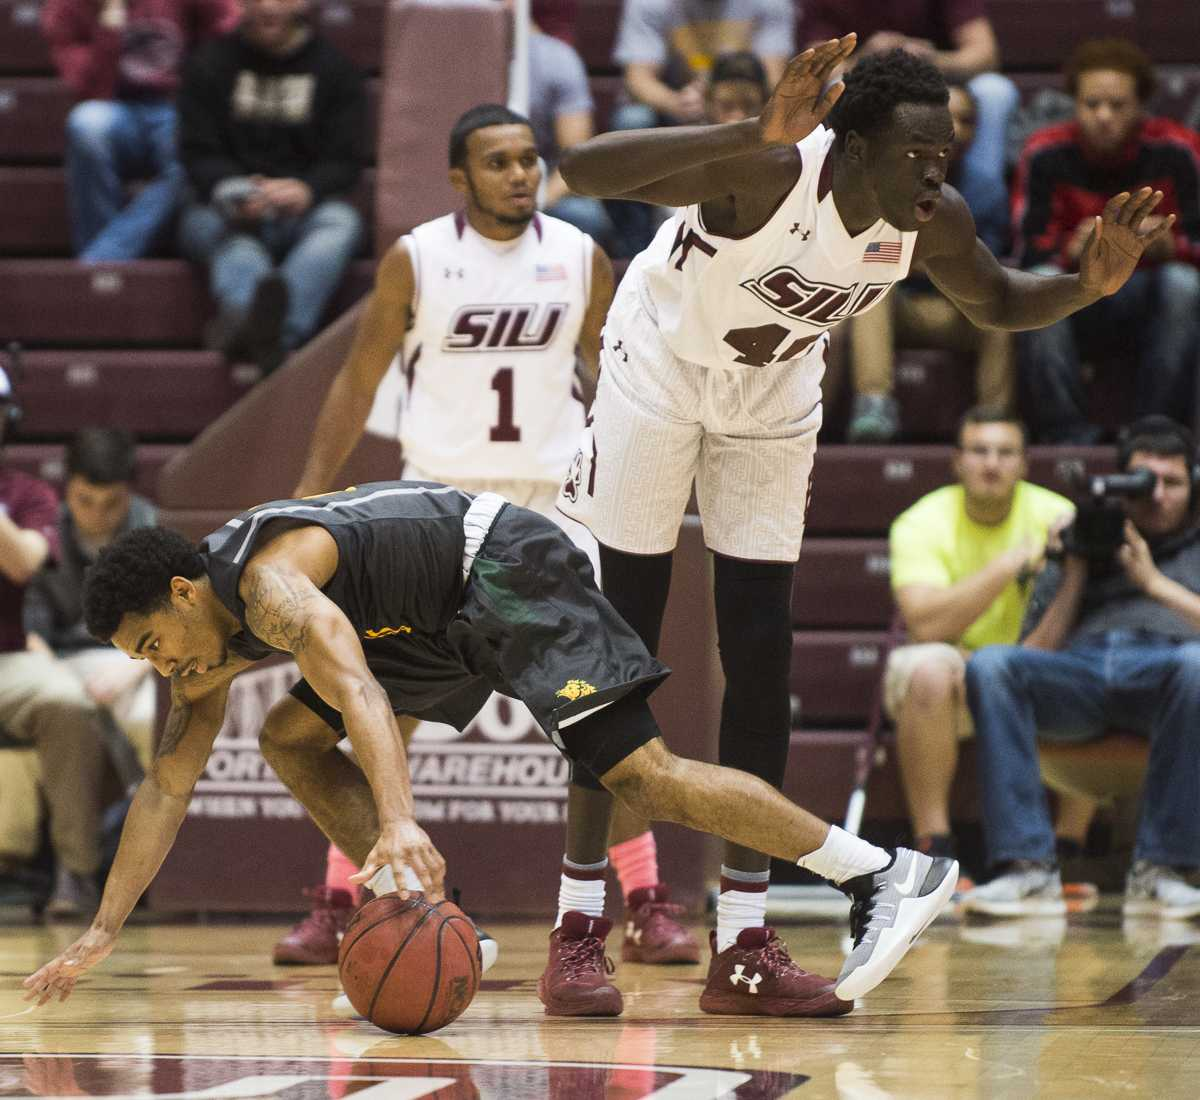 Junior forward Thik Bol (40) holds himself back from fouling as Missouri Southern junior guard CJ Carr (0) attempts to recover a loose ball Wednesday, Nov. 16, 2016, during the Salukis' 85-64 win over the Missouri Southern Lions at SIU Arena. (Ryan Michalesko | @photosbylesko)